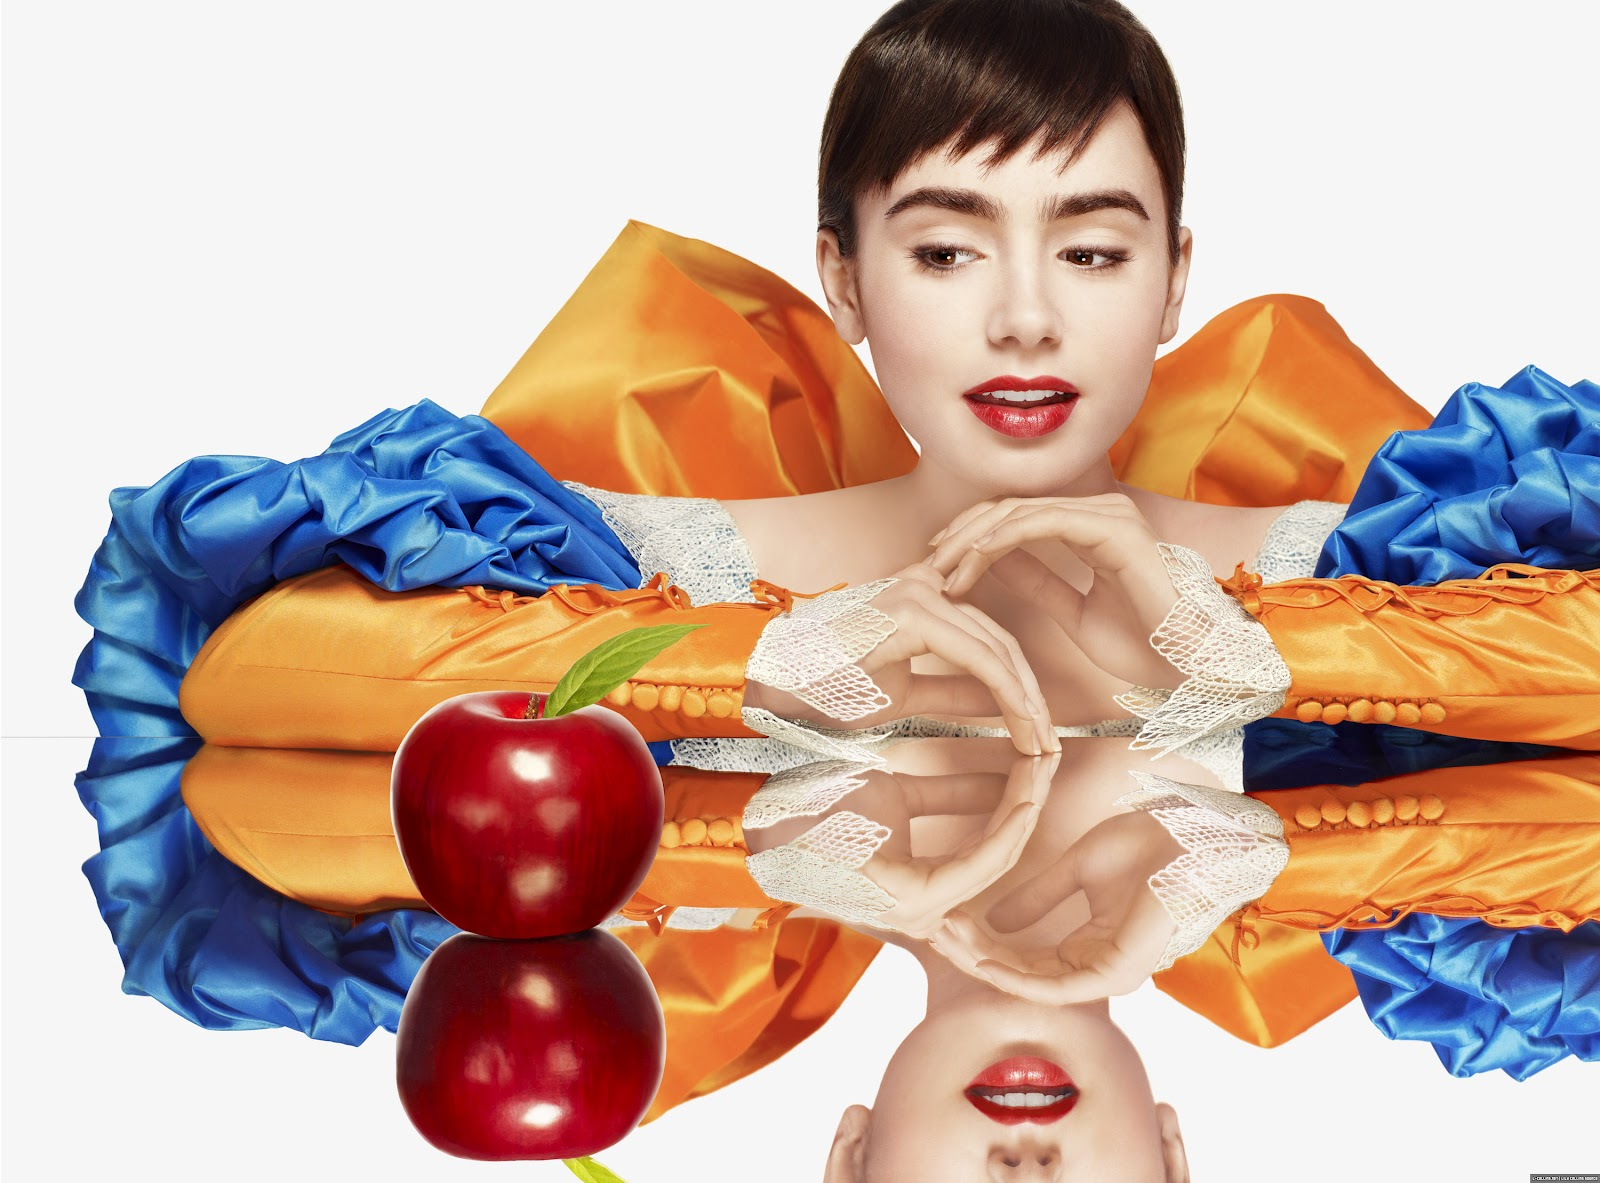 Mirror Mirror 2012 Vibrant And Sweet Re Telling Of Snow White Finding Wonderland